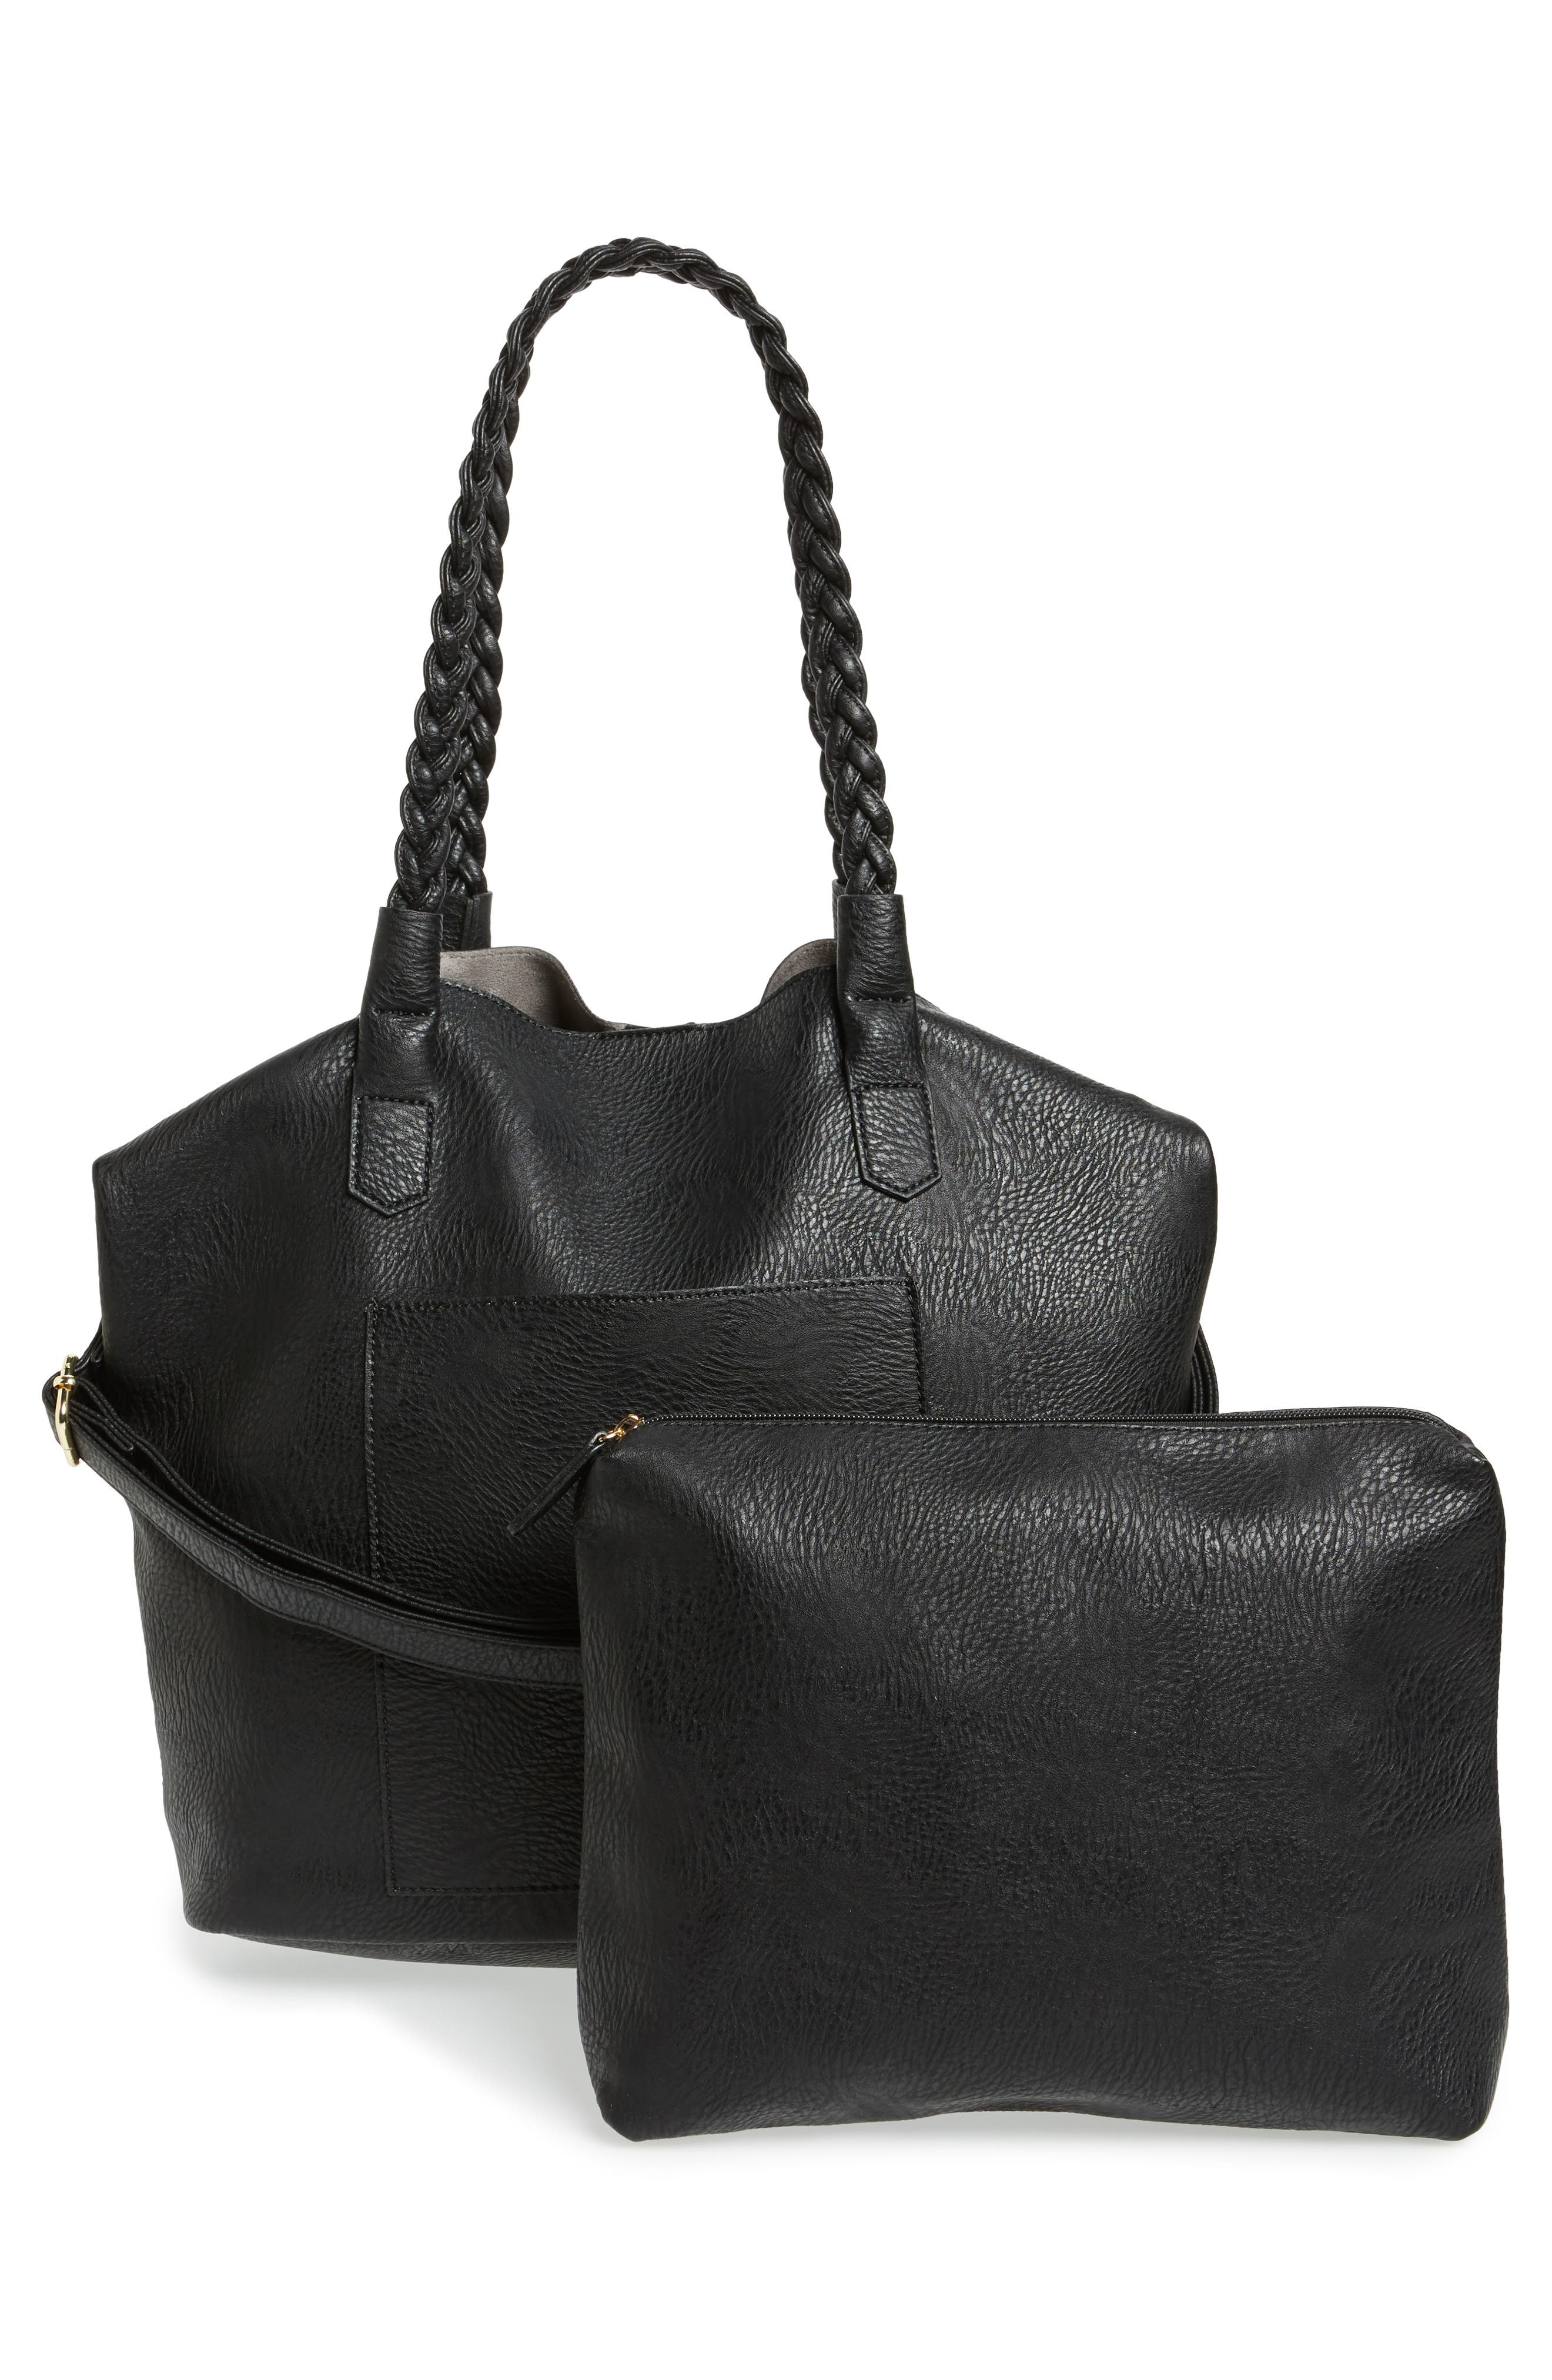 STREET LEVEL, Slouchy Faux Leather Tote with Pouch, Alternate thumbnail 2, color, 001